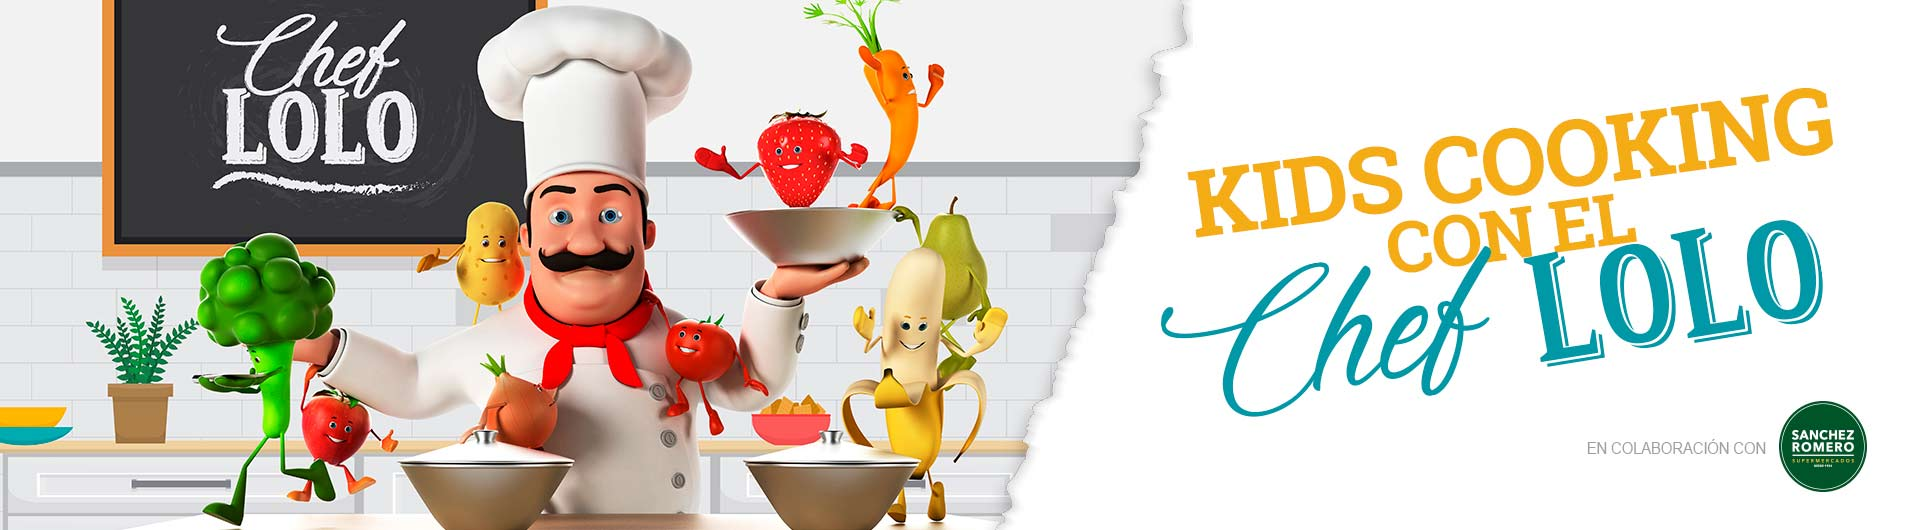 Kids Cooking con Chef Lolo